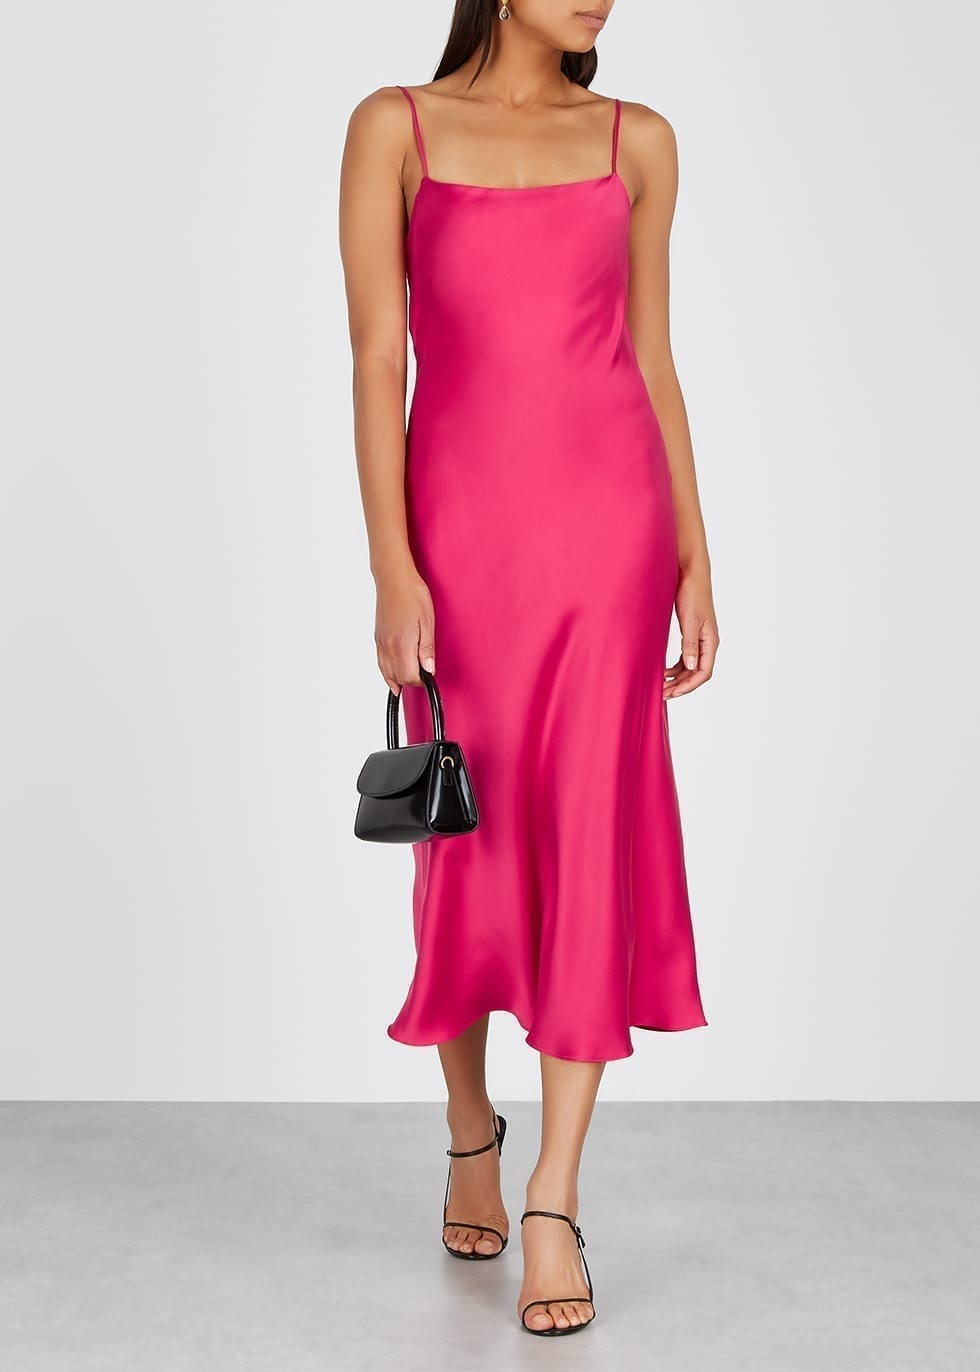 BEC & BRIDGE Classic Fuchsia Silk Midi Dress